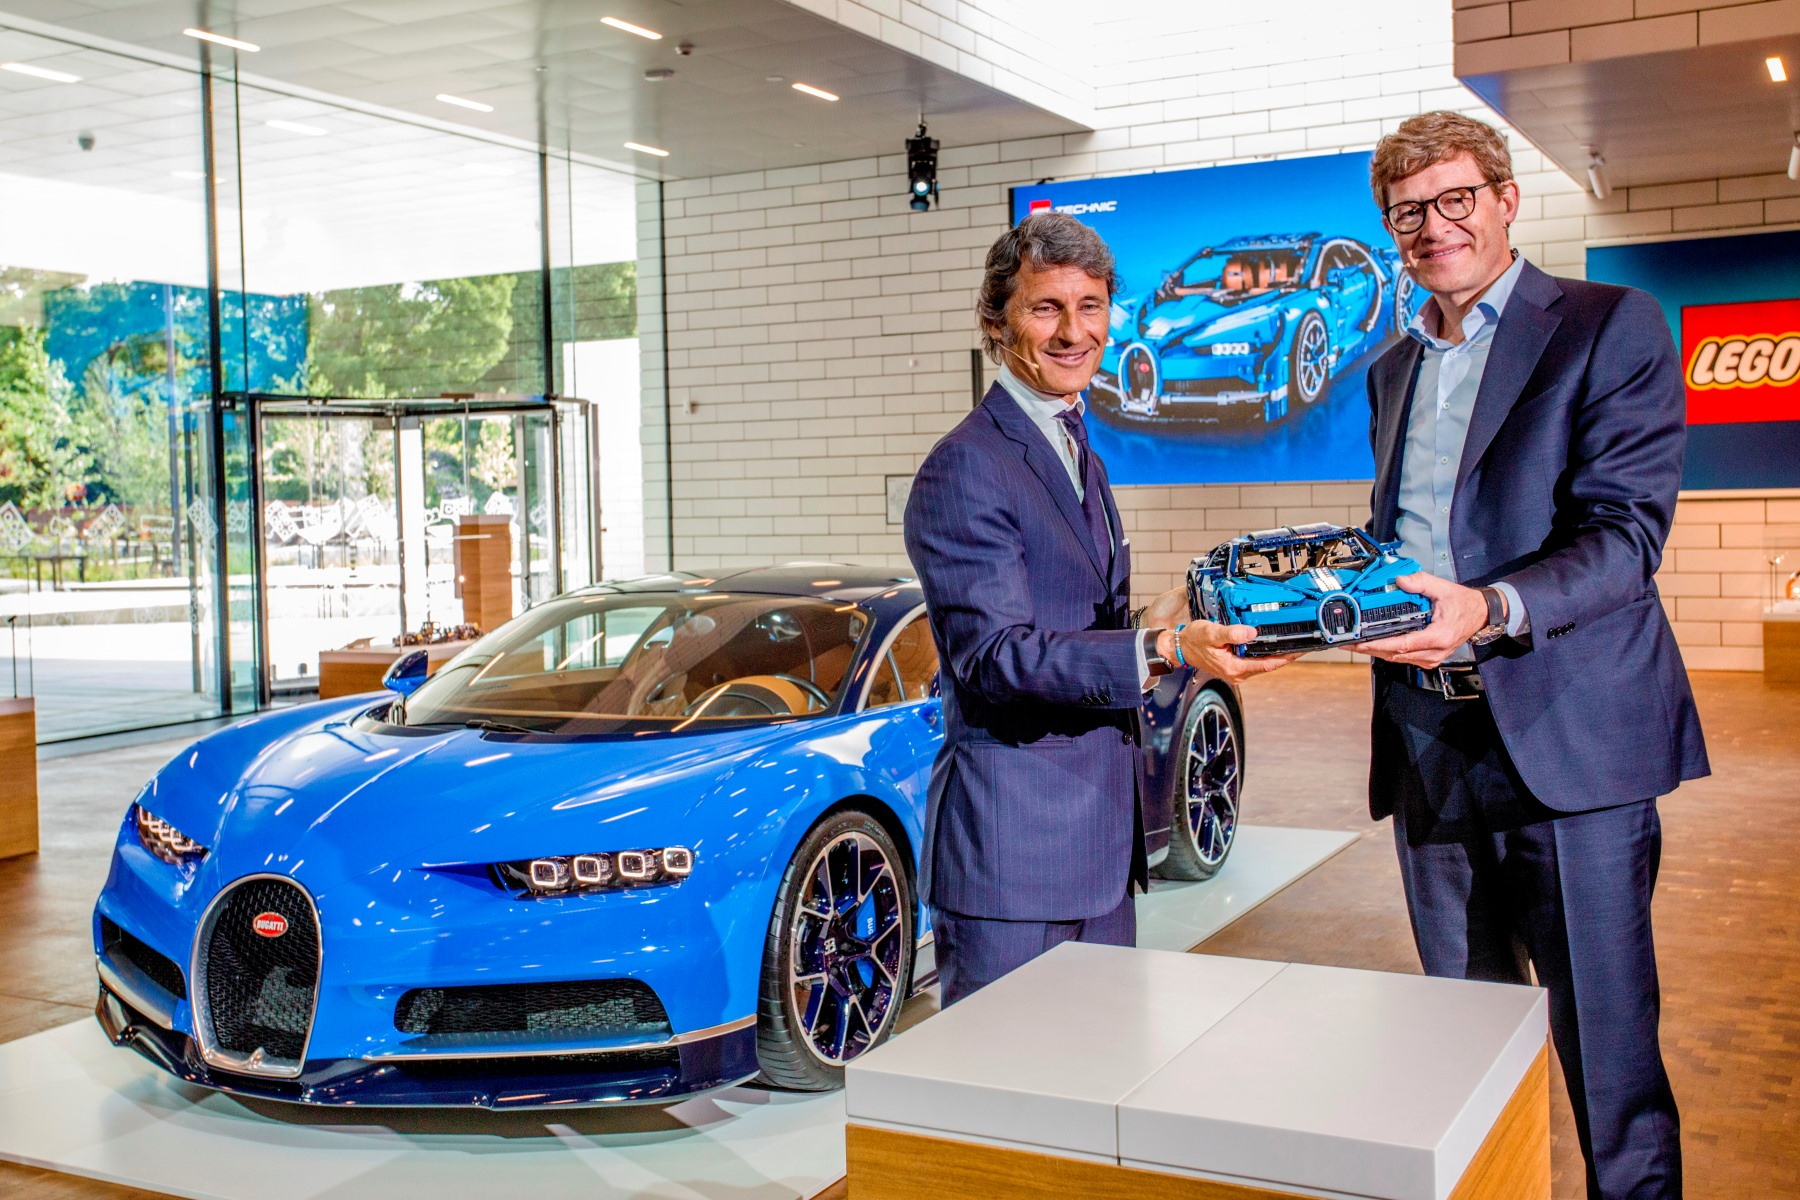 Niels B. Christiansen, CEO of the LEGO Group, (right) and Bugatti President Stephan Winkelmann